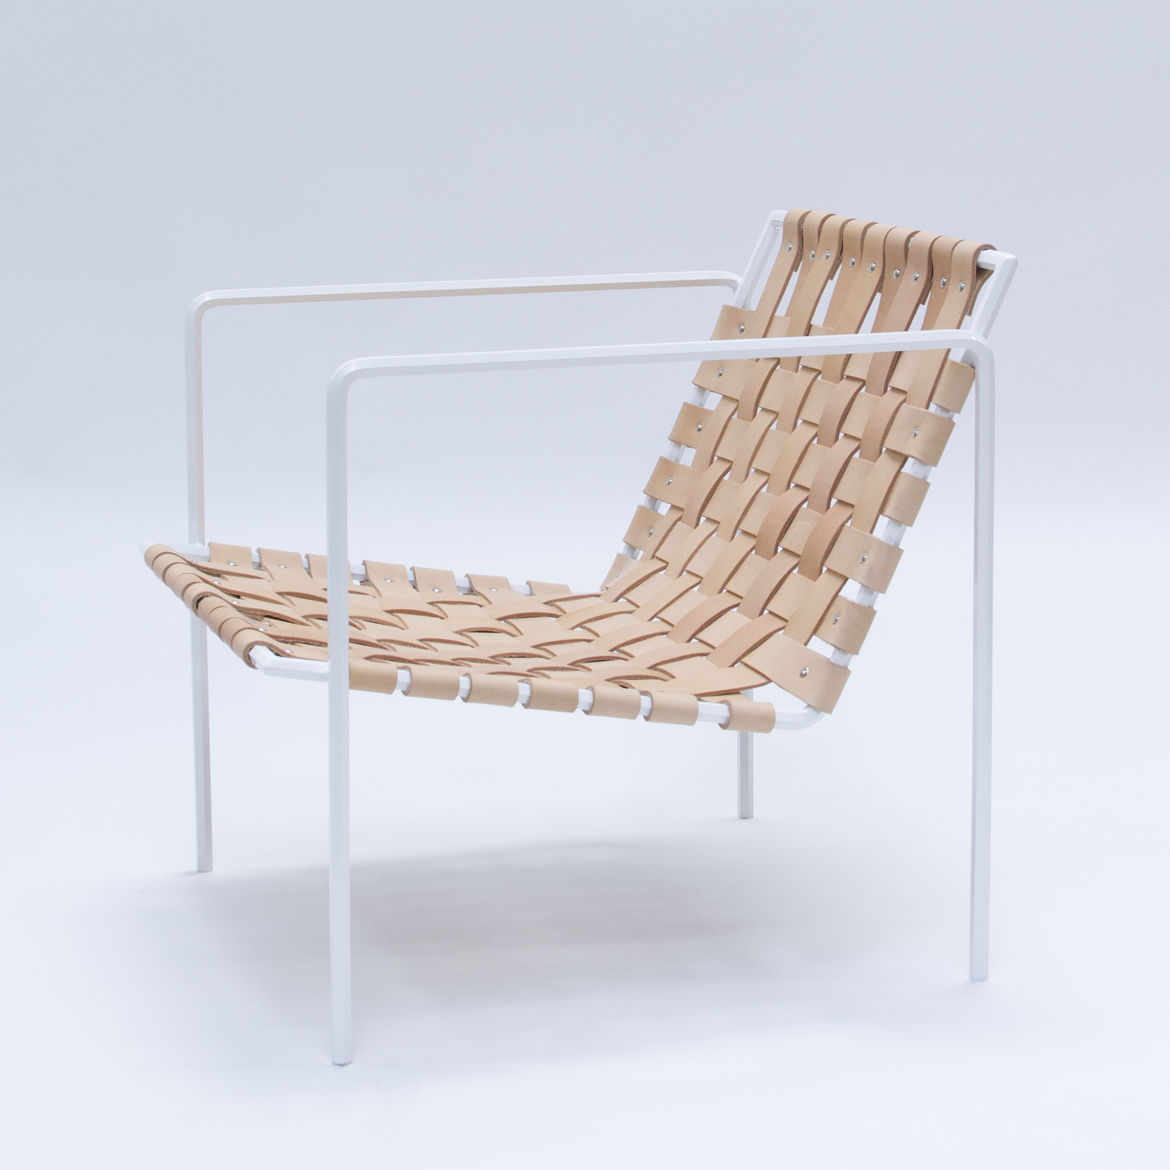 Powder-coated steel and leather woven chair